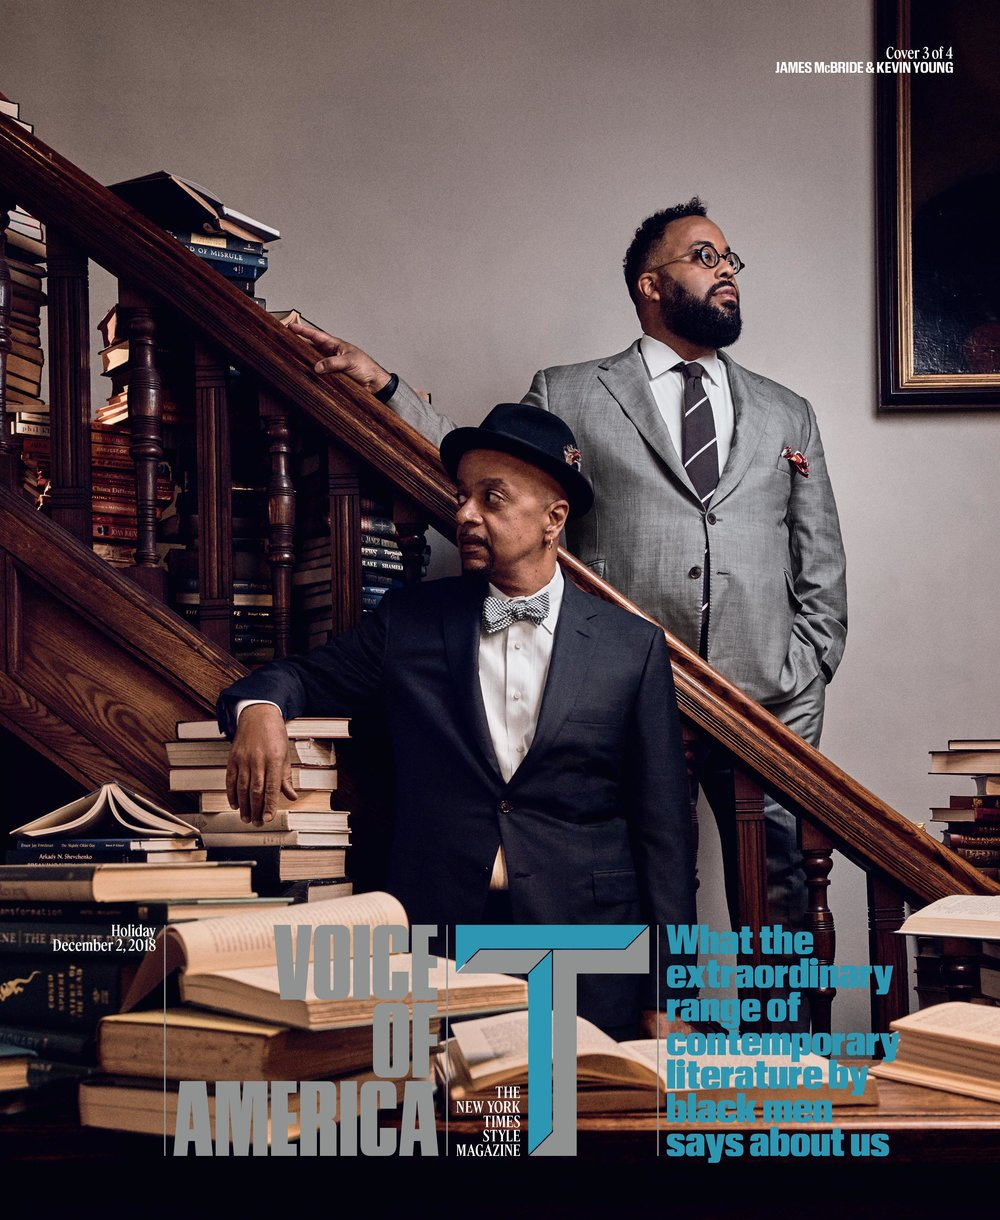 James McBride & Kevin Young